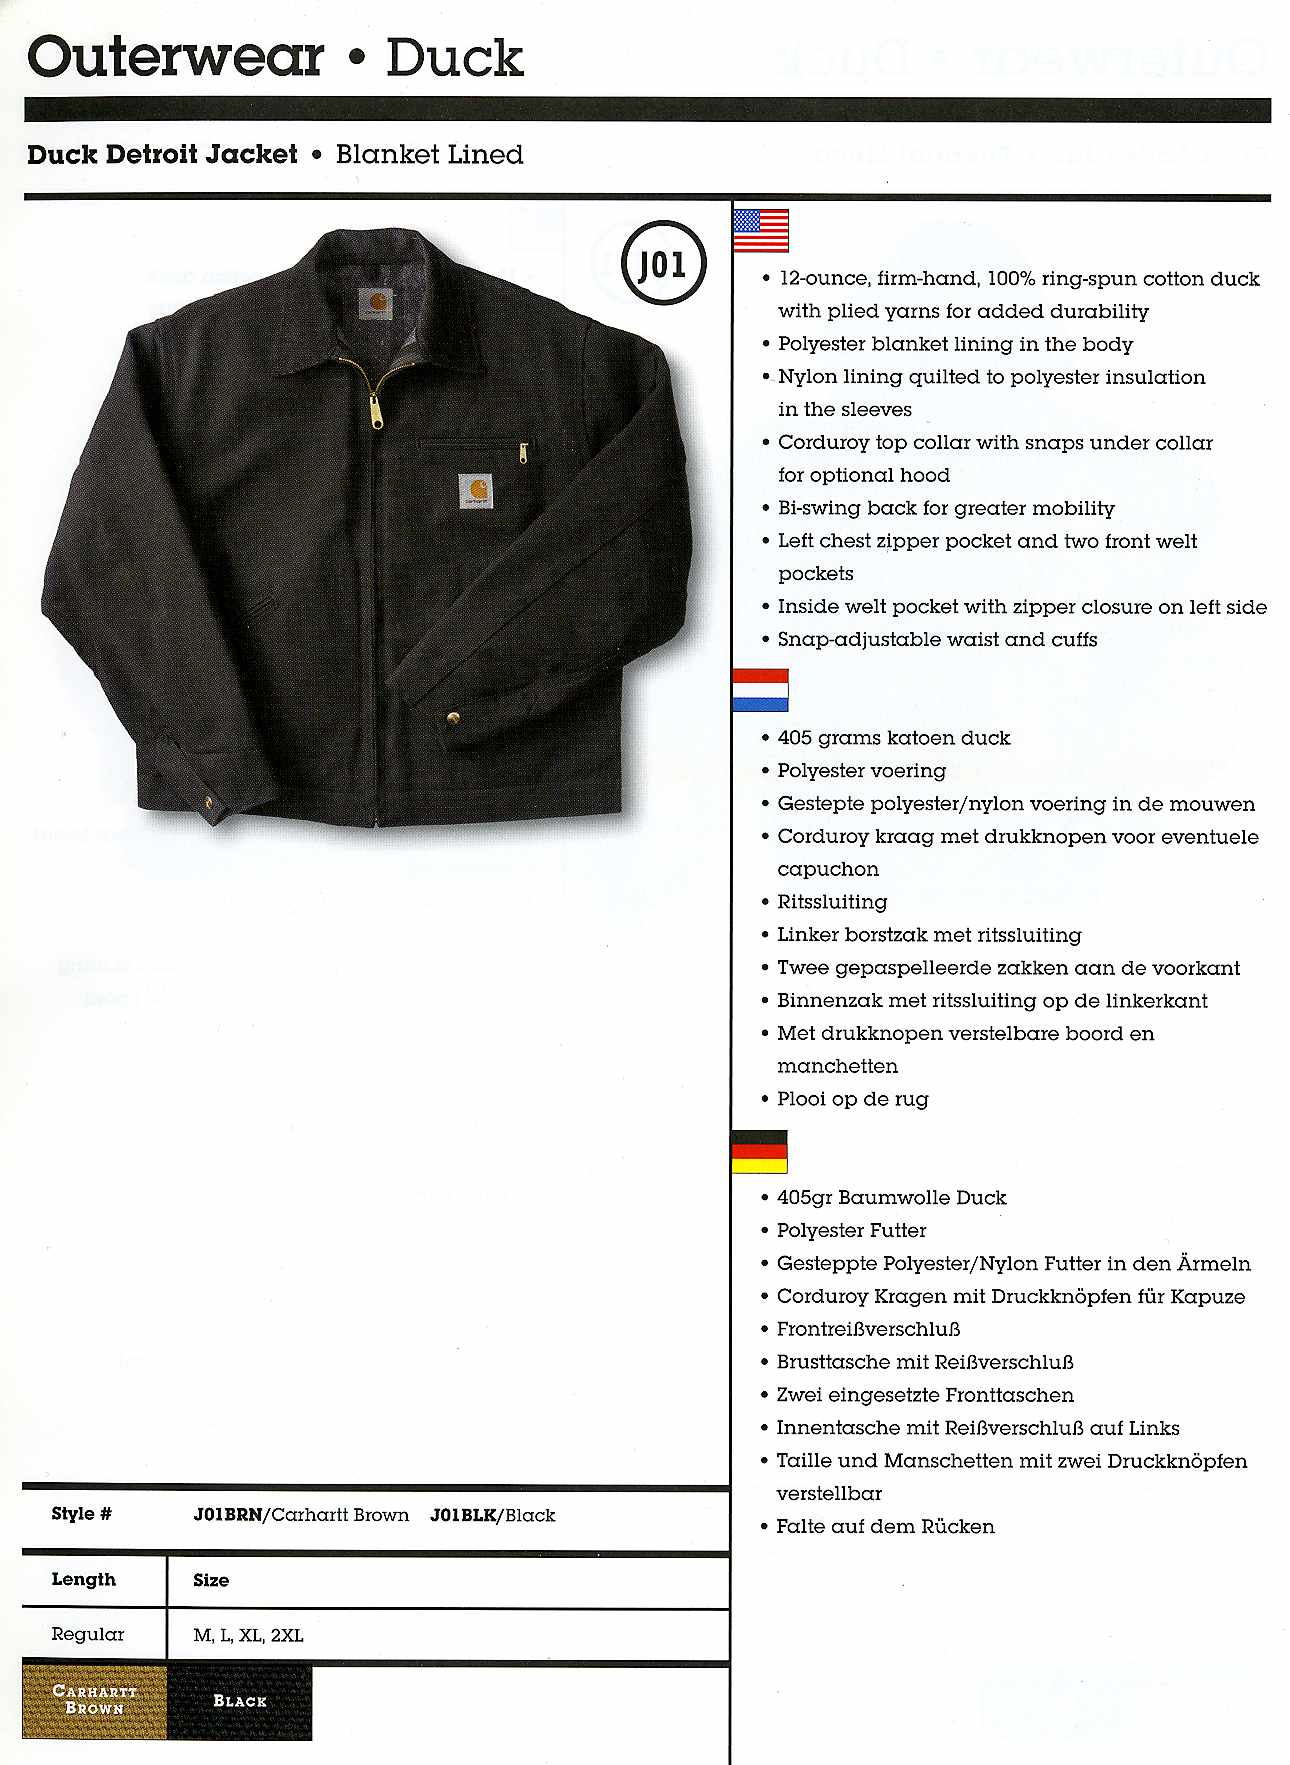 Carhartt Europe catalog, 2005